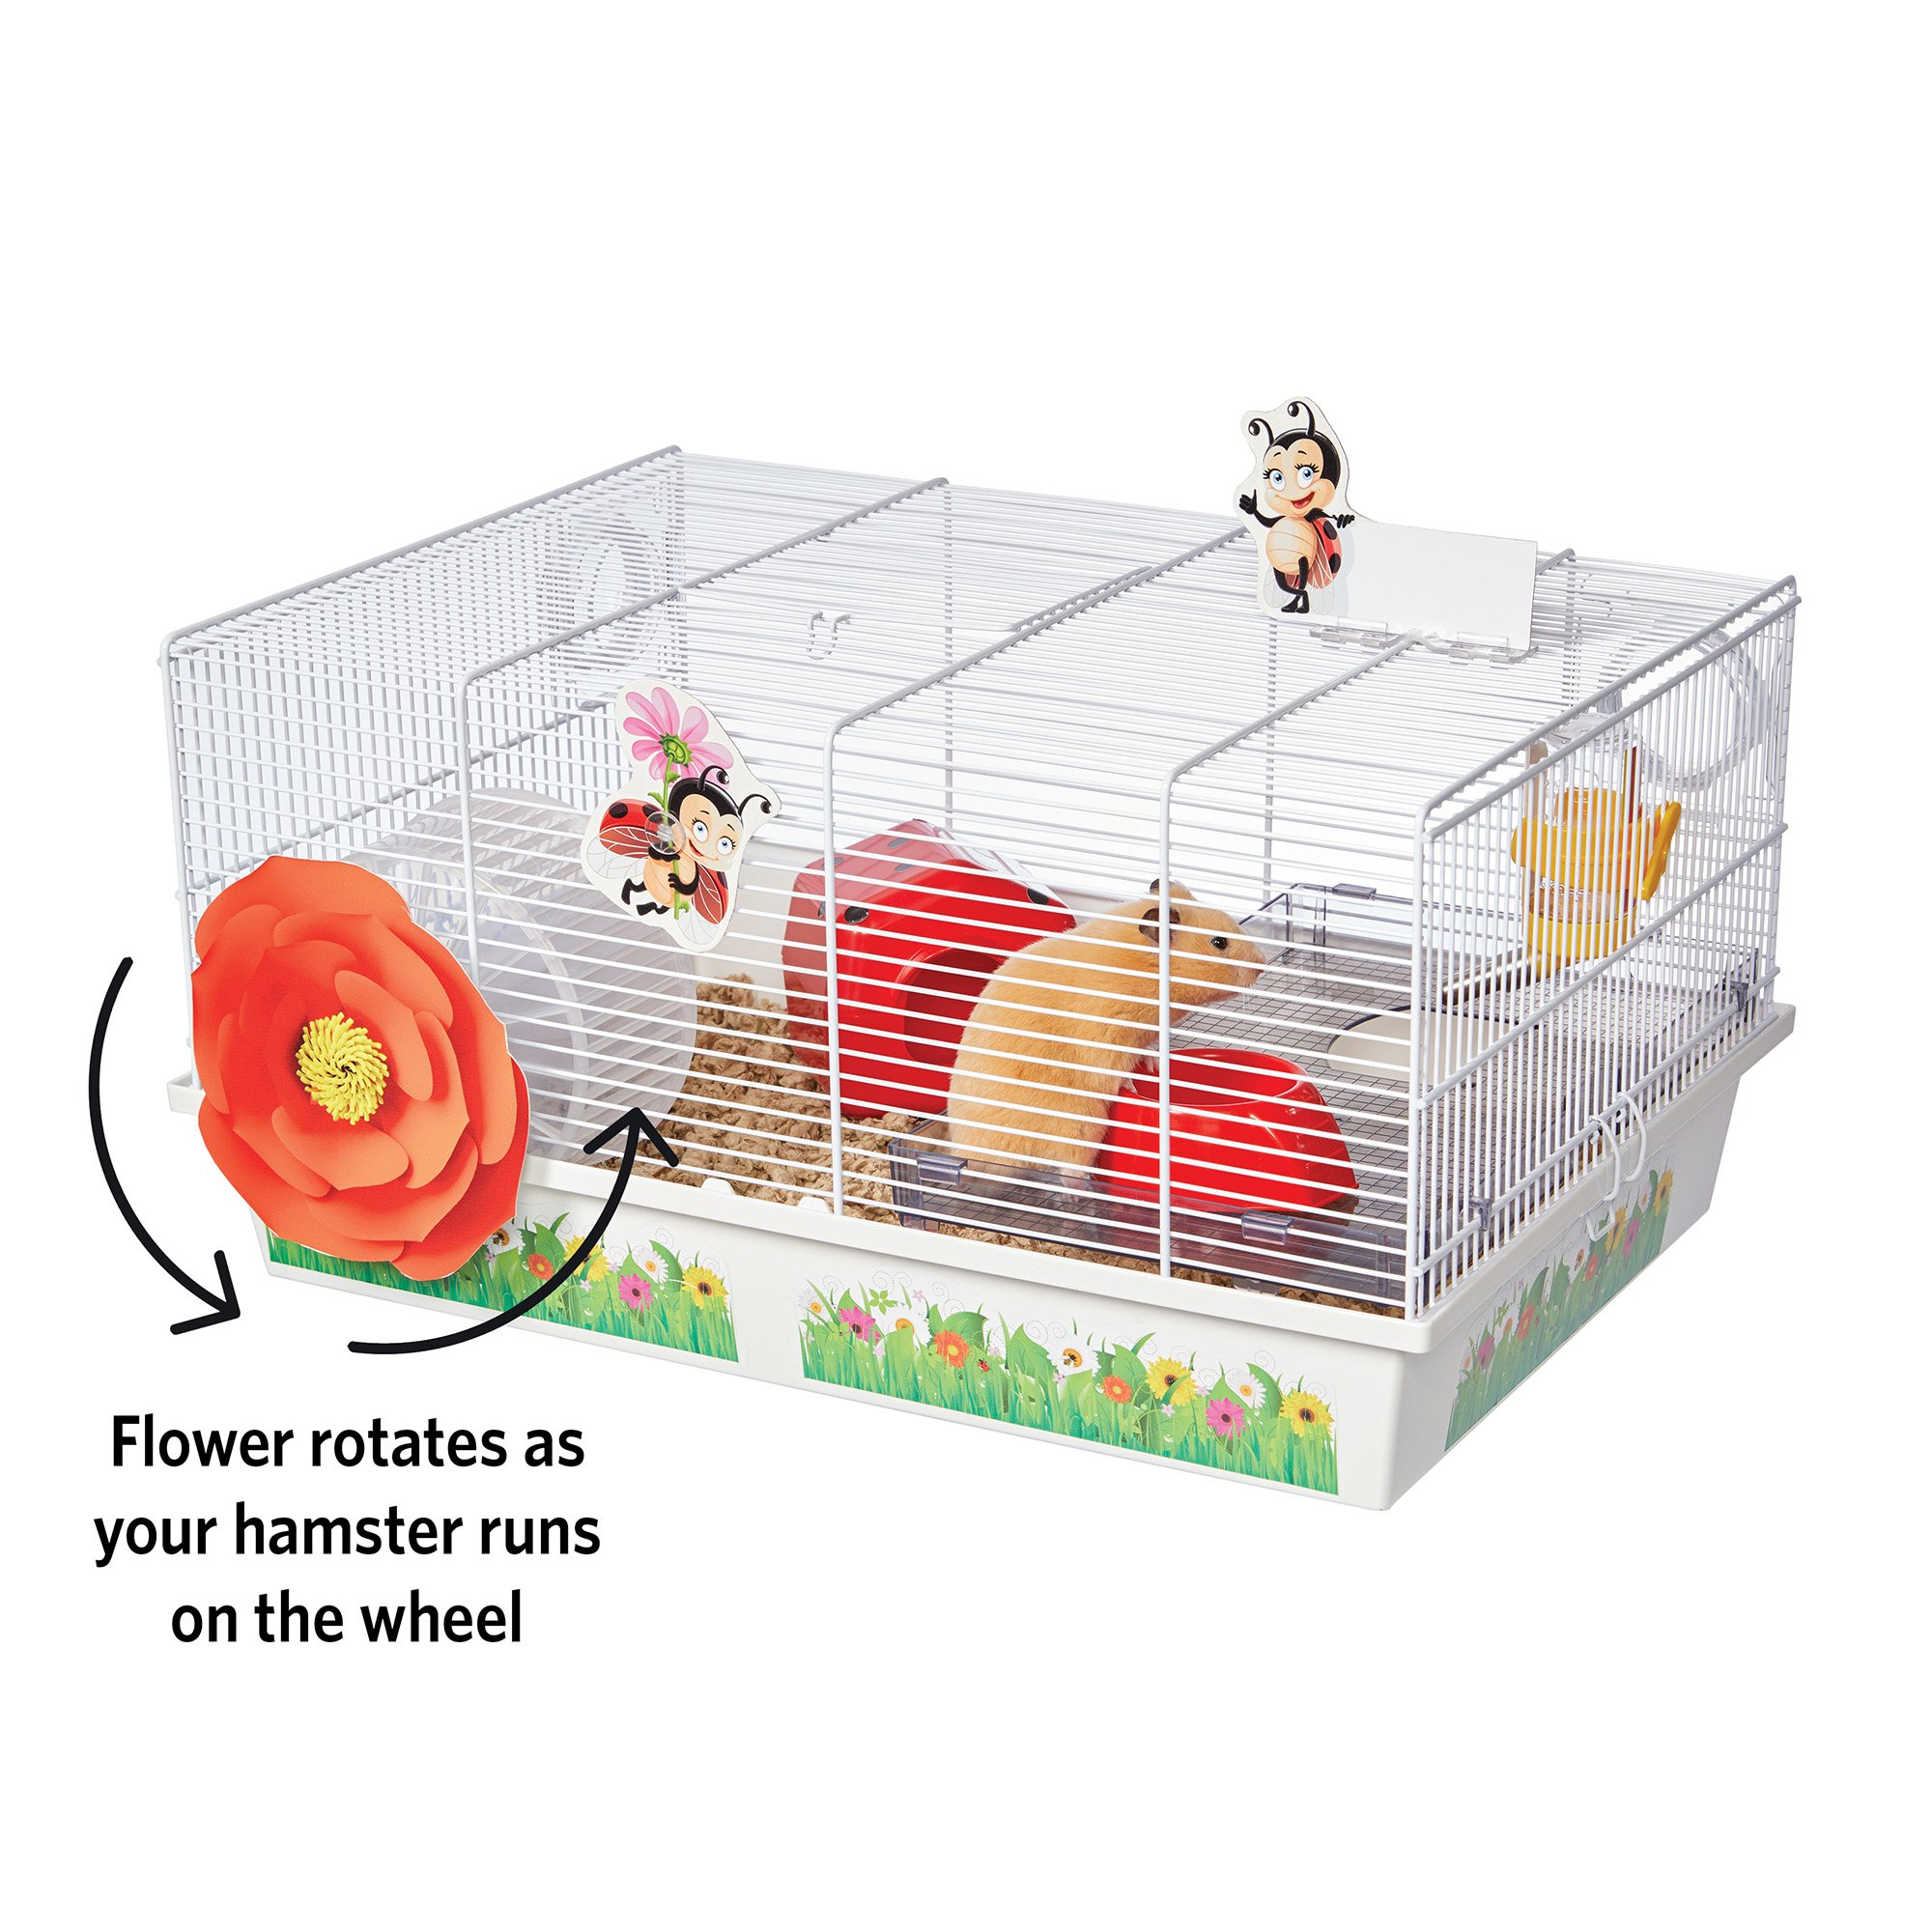 Midwest Critterville Ladybug Hamster Cage 13 85 L X 19 4 W X 9 8 H 13 85 In Hamster House Small Animal Cage Hamster Habitat